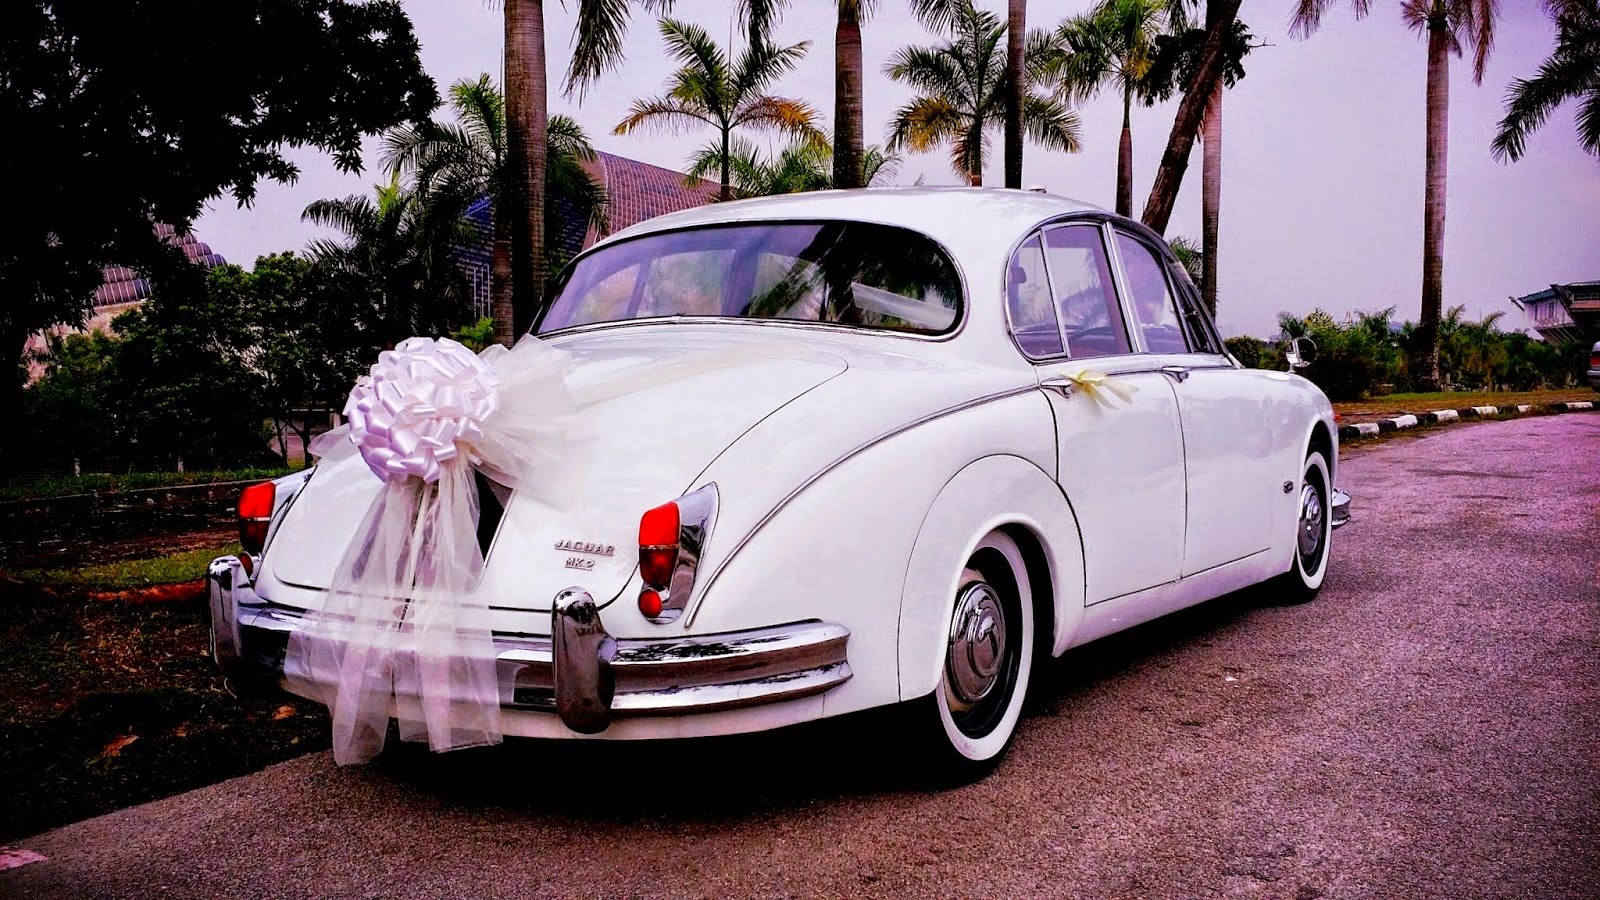 RedOrca Malaysia Wedding and Event Car Rental: Classics Car